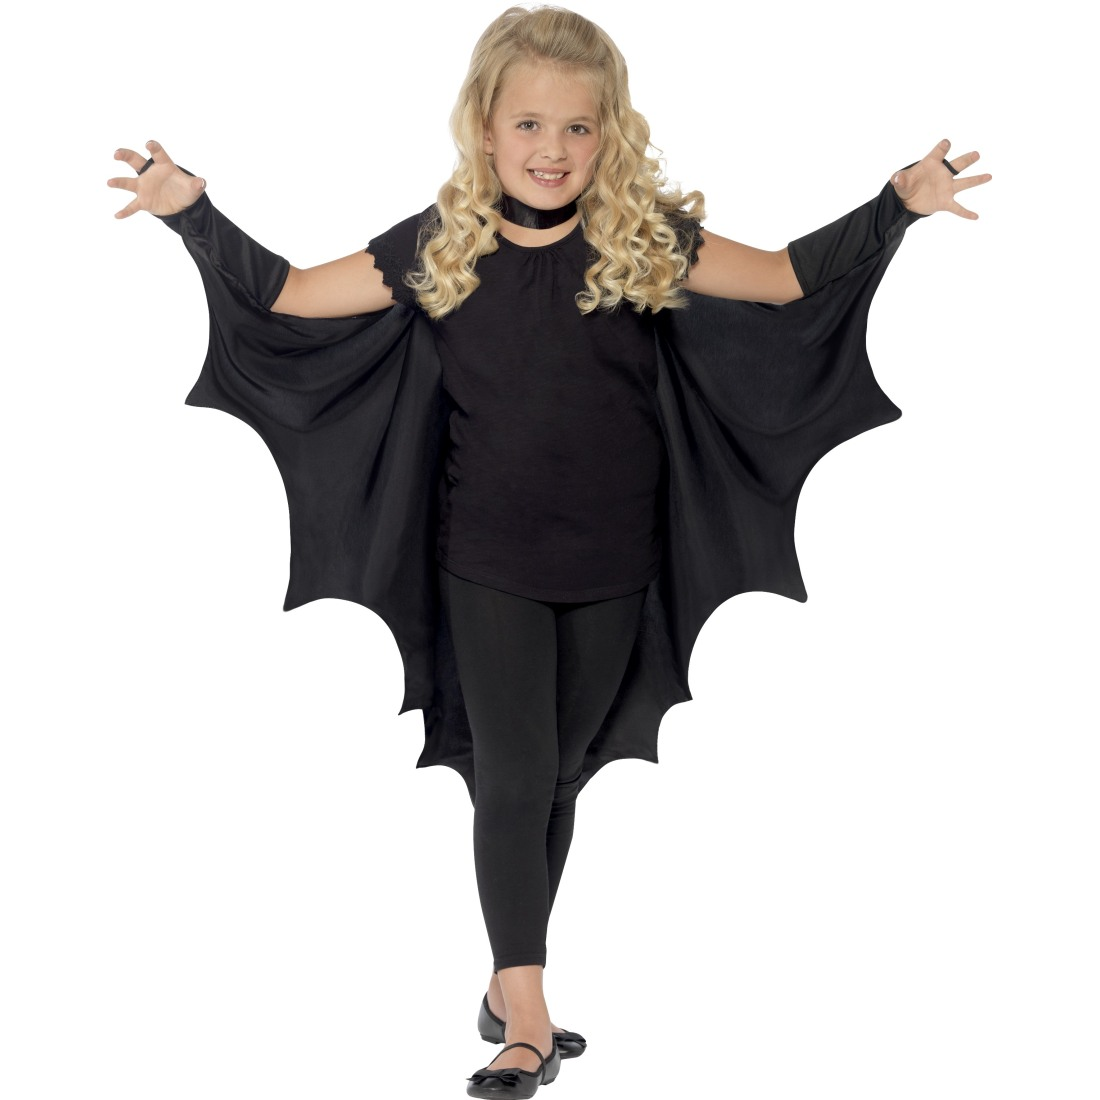 vampir fledermausfl gel umhang kinder fledermaus halloween cape kost m gewand ebay. Black Bedroom Furniture Sets. Home Design Ideas